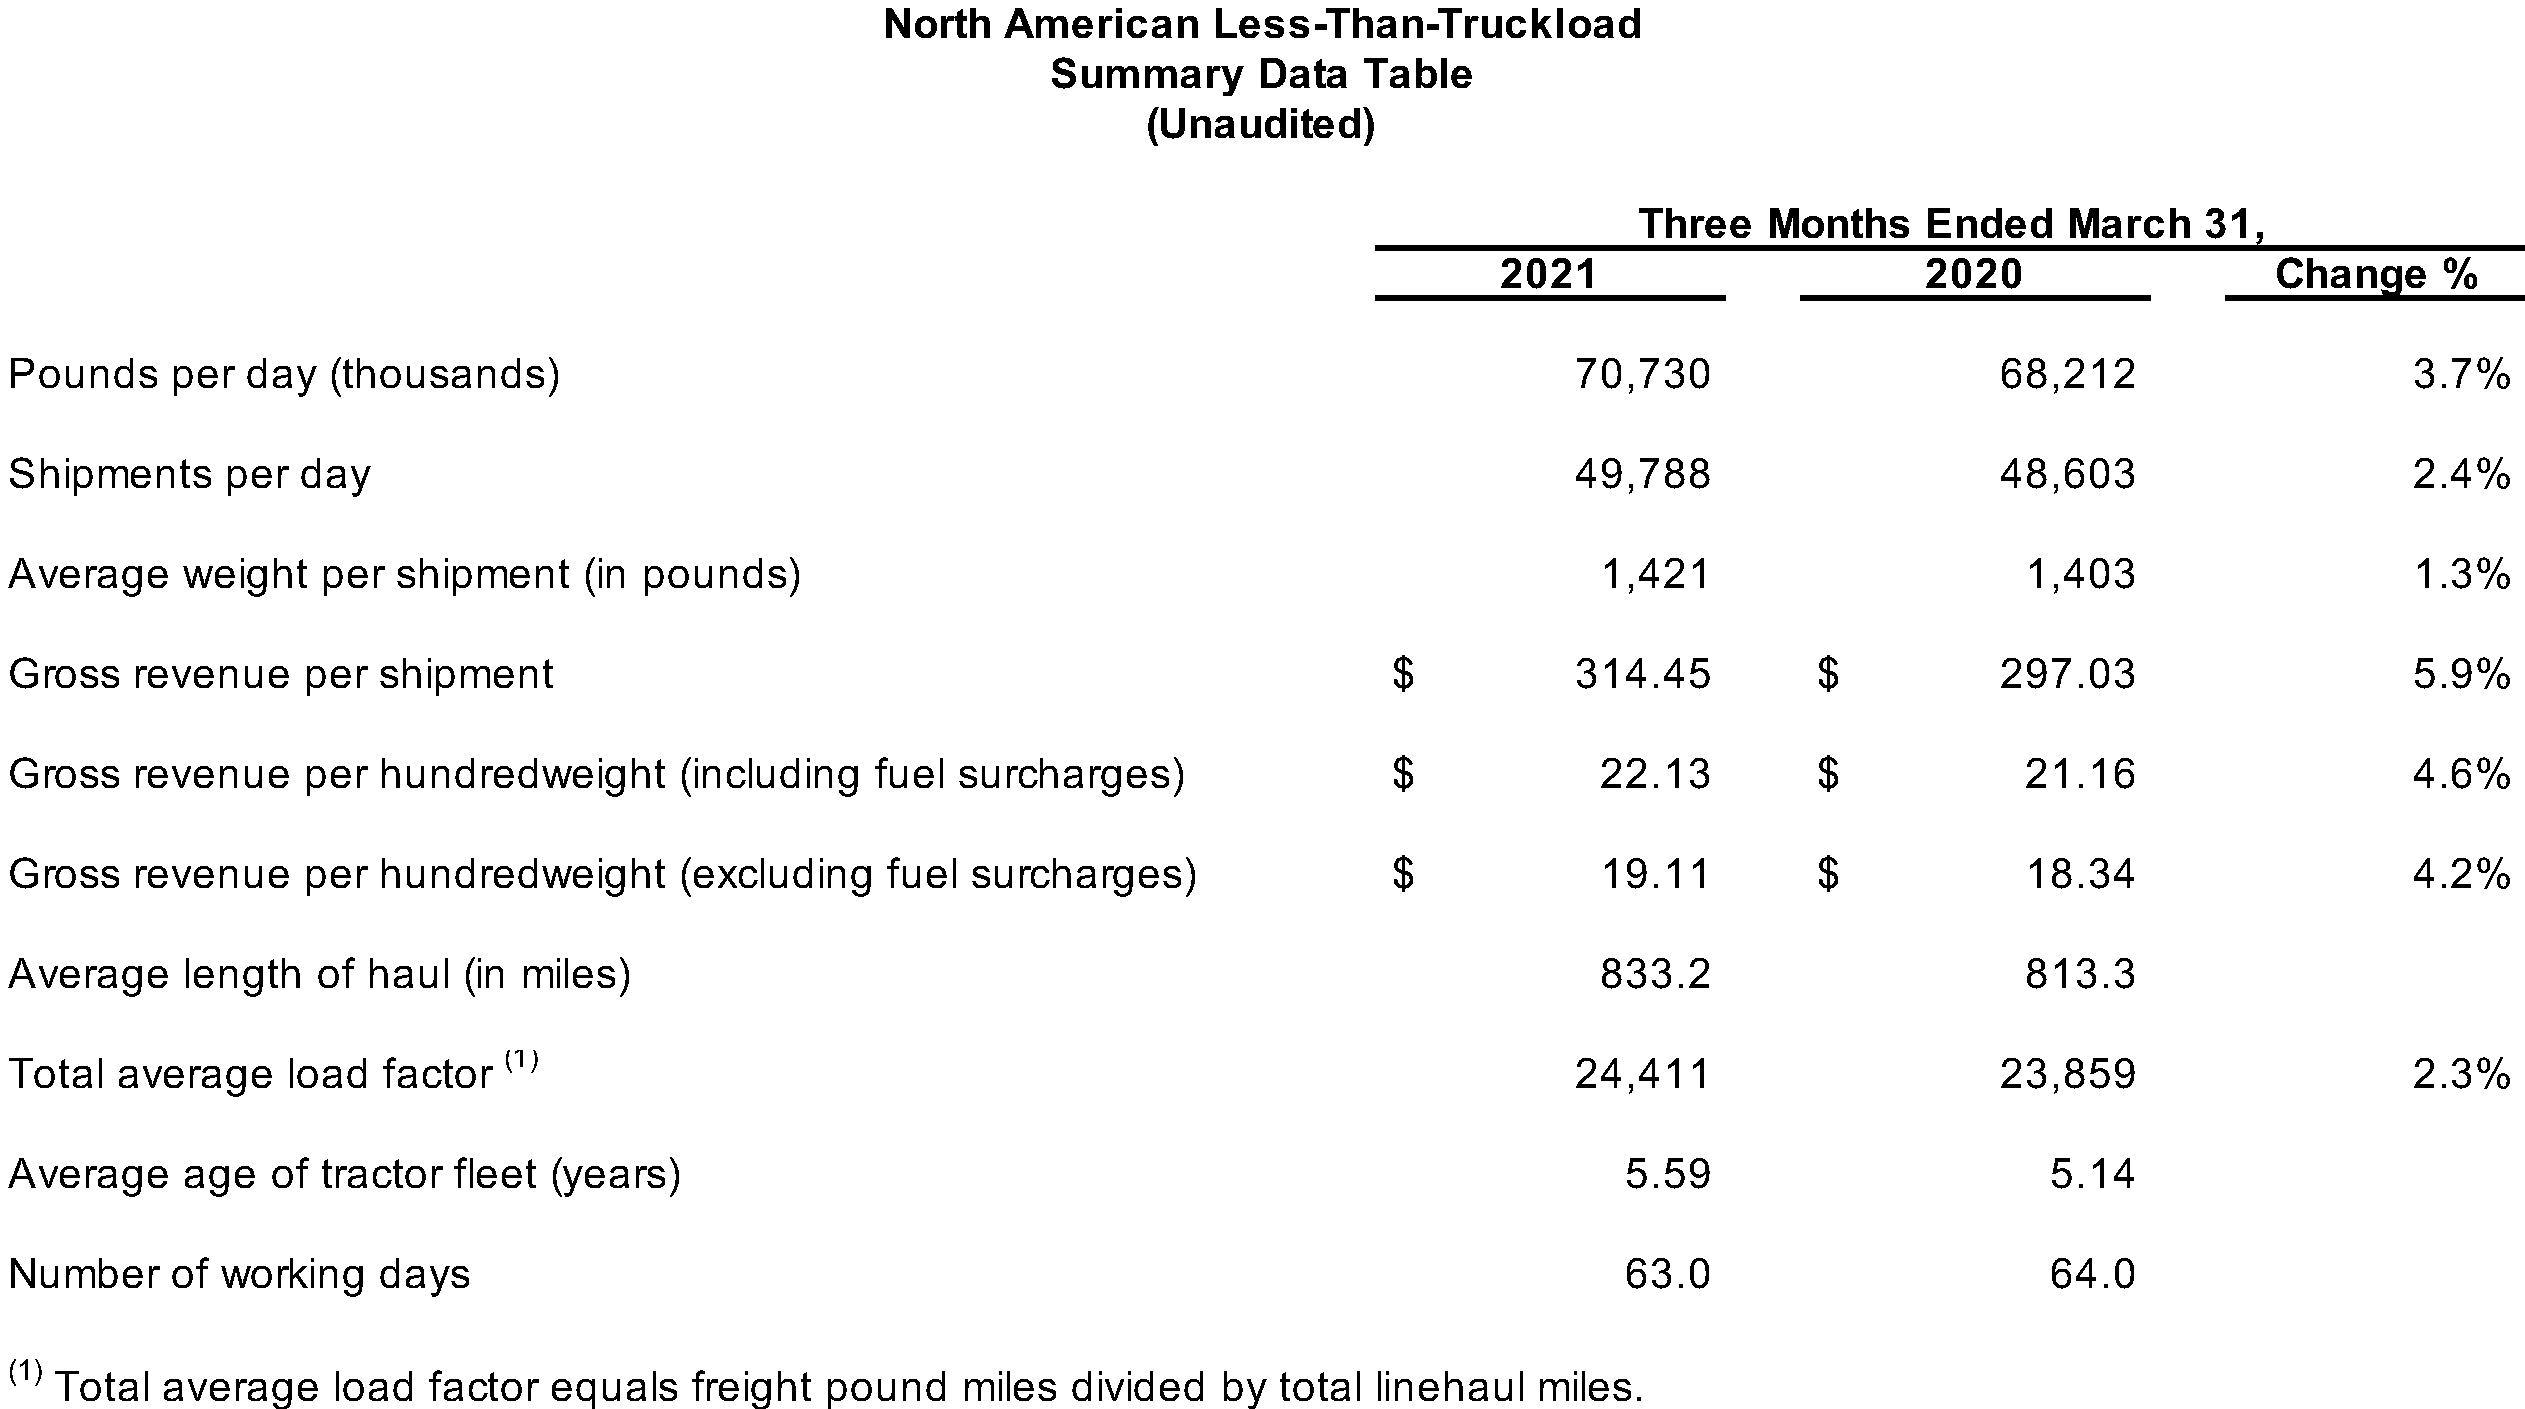 North American LTL Summary Data Table (Unaudited)